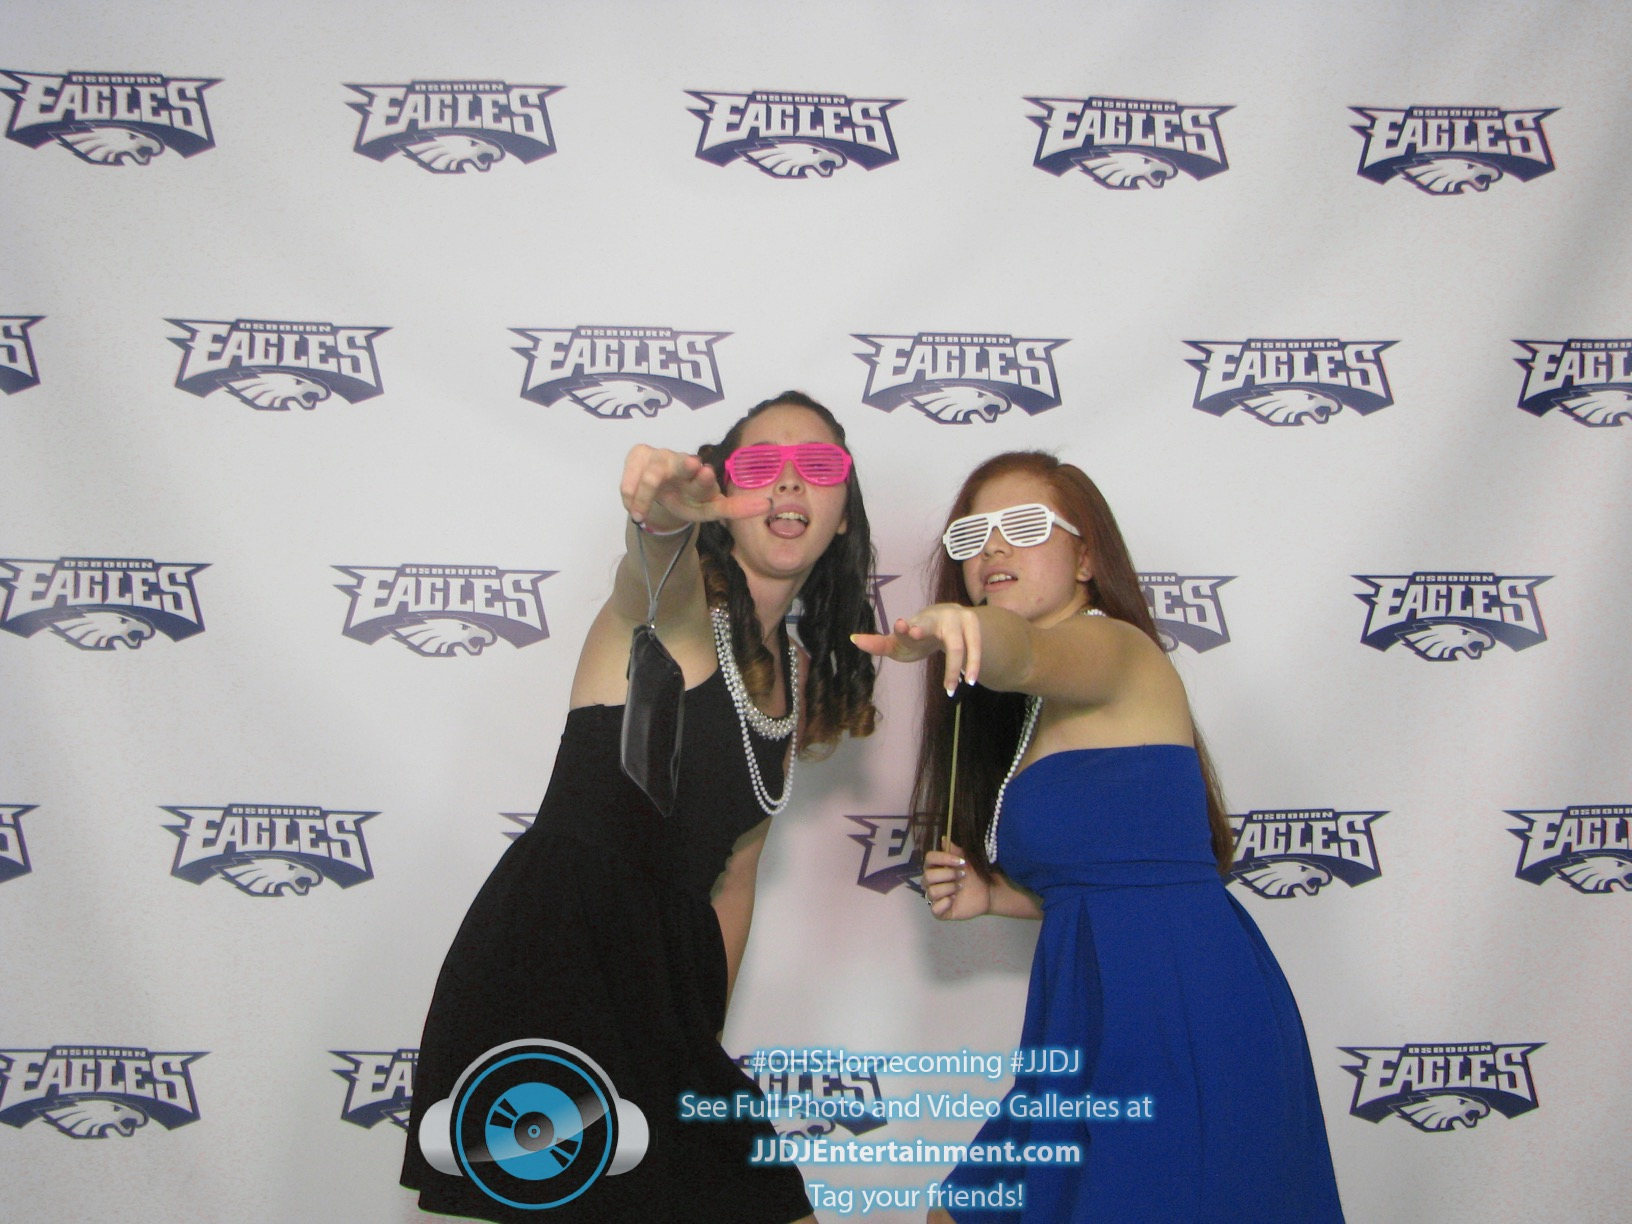 OHS 2014 Homecoming Photobooth -211